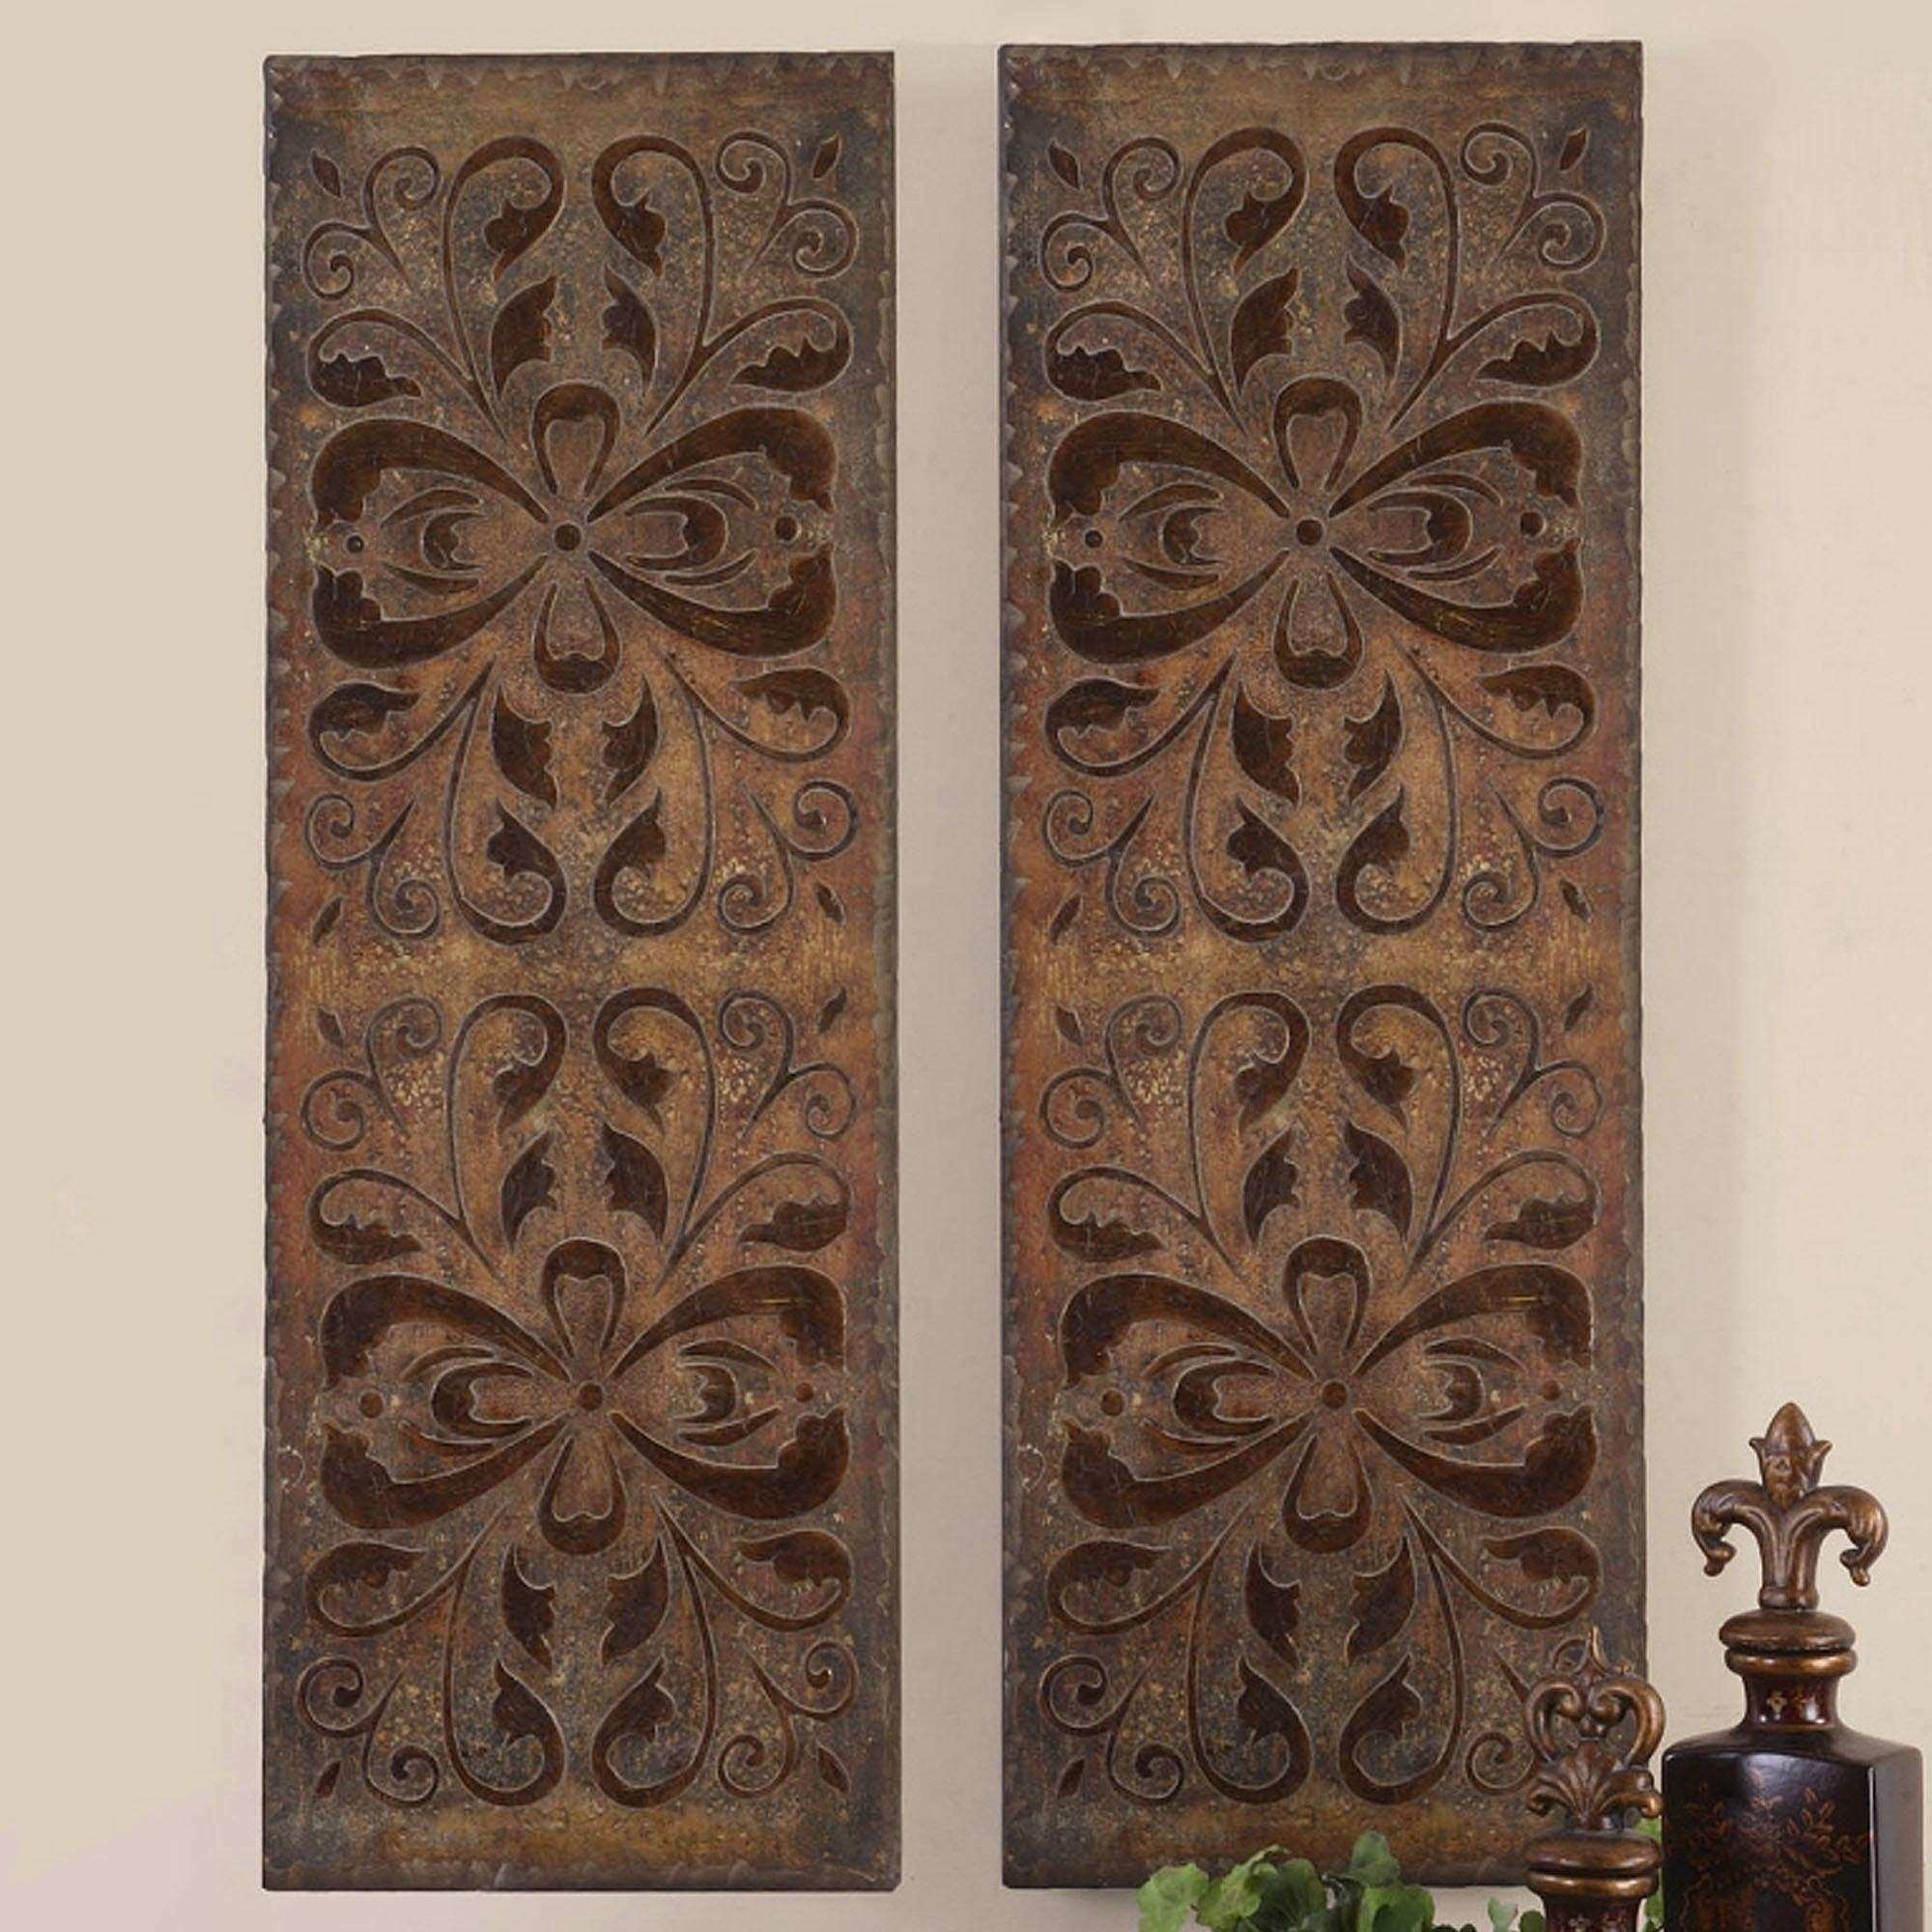 Wood Carvings Wall Decor Elegant 20 S Wood Carved Wall Art Panels With Wall Art Panels (Photo 7 of 20)